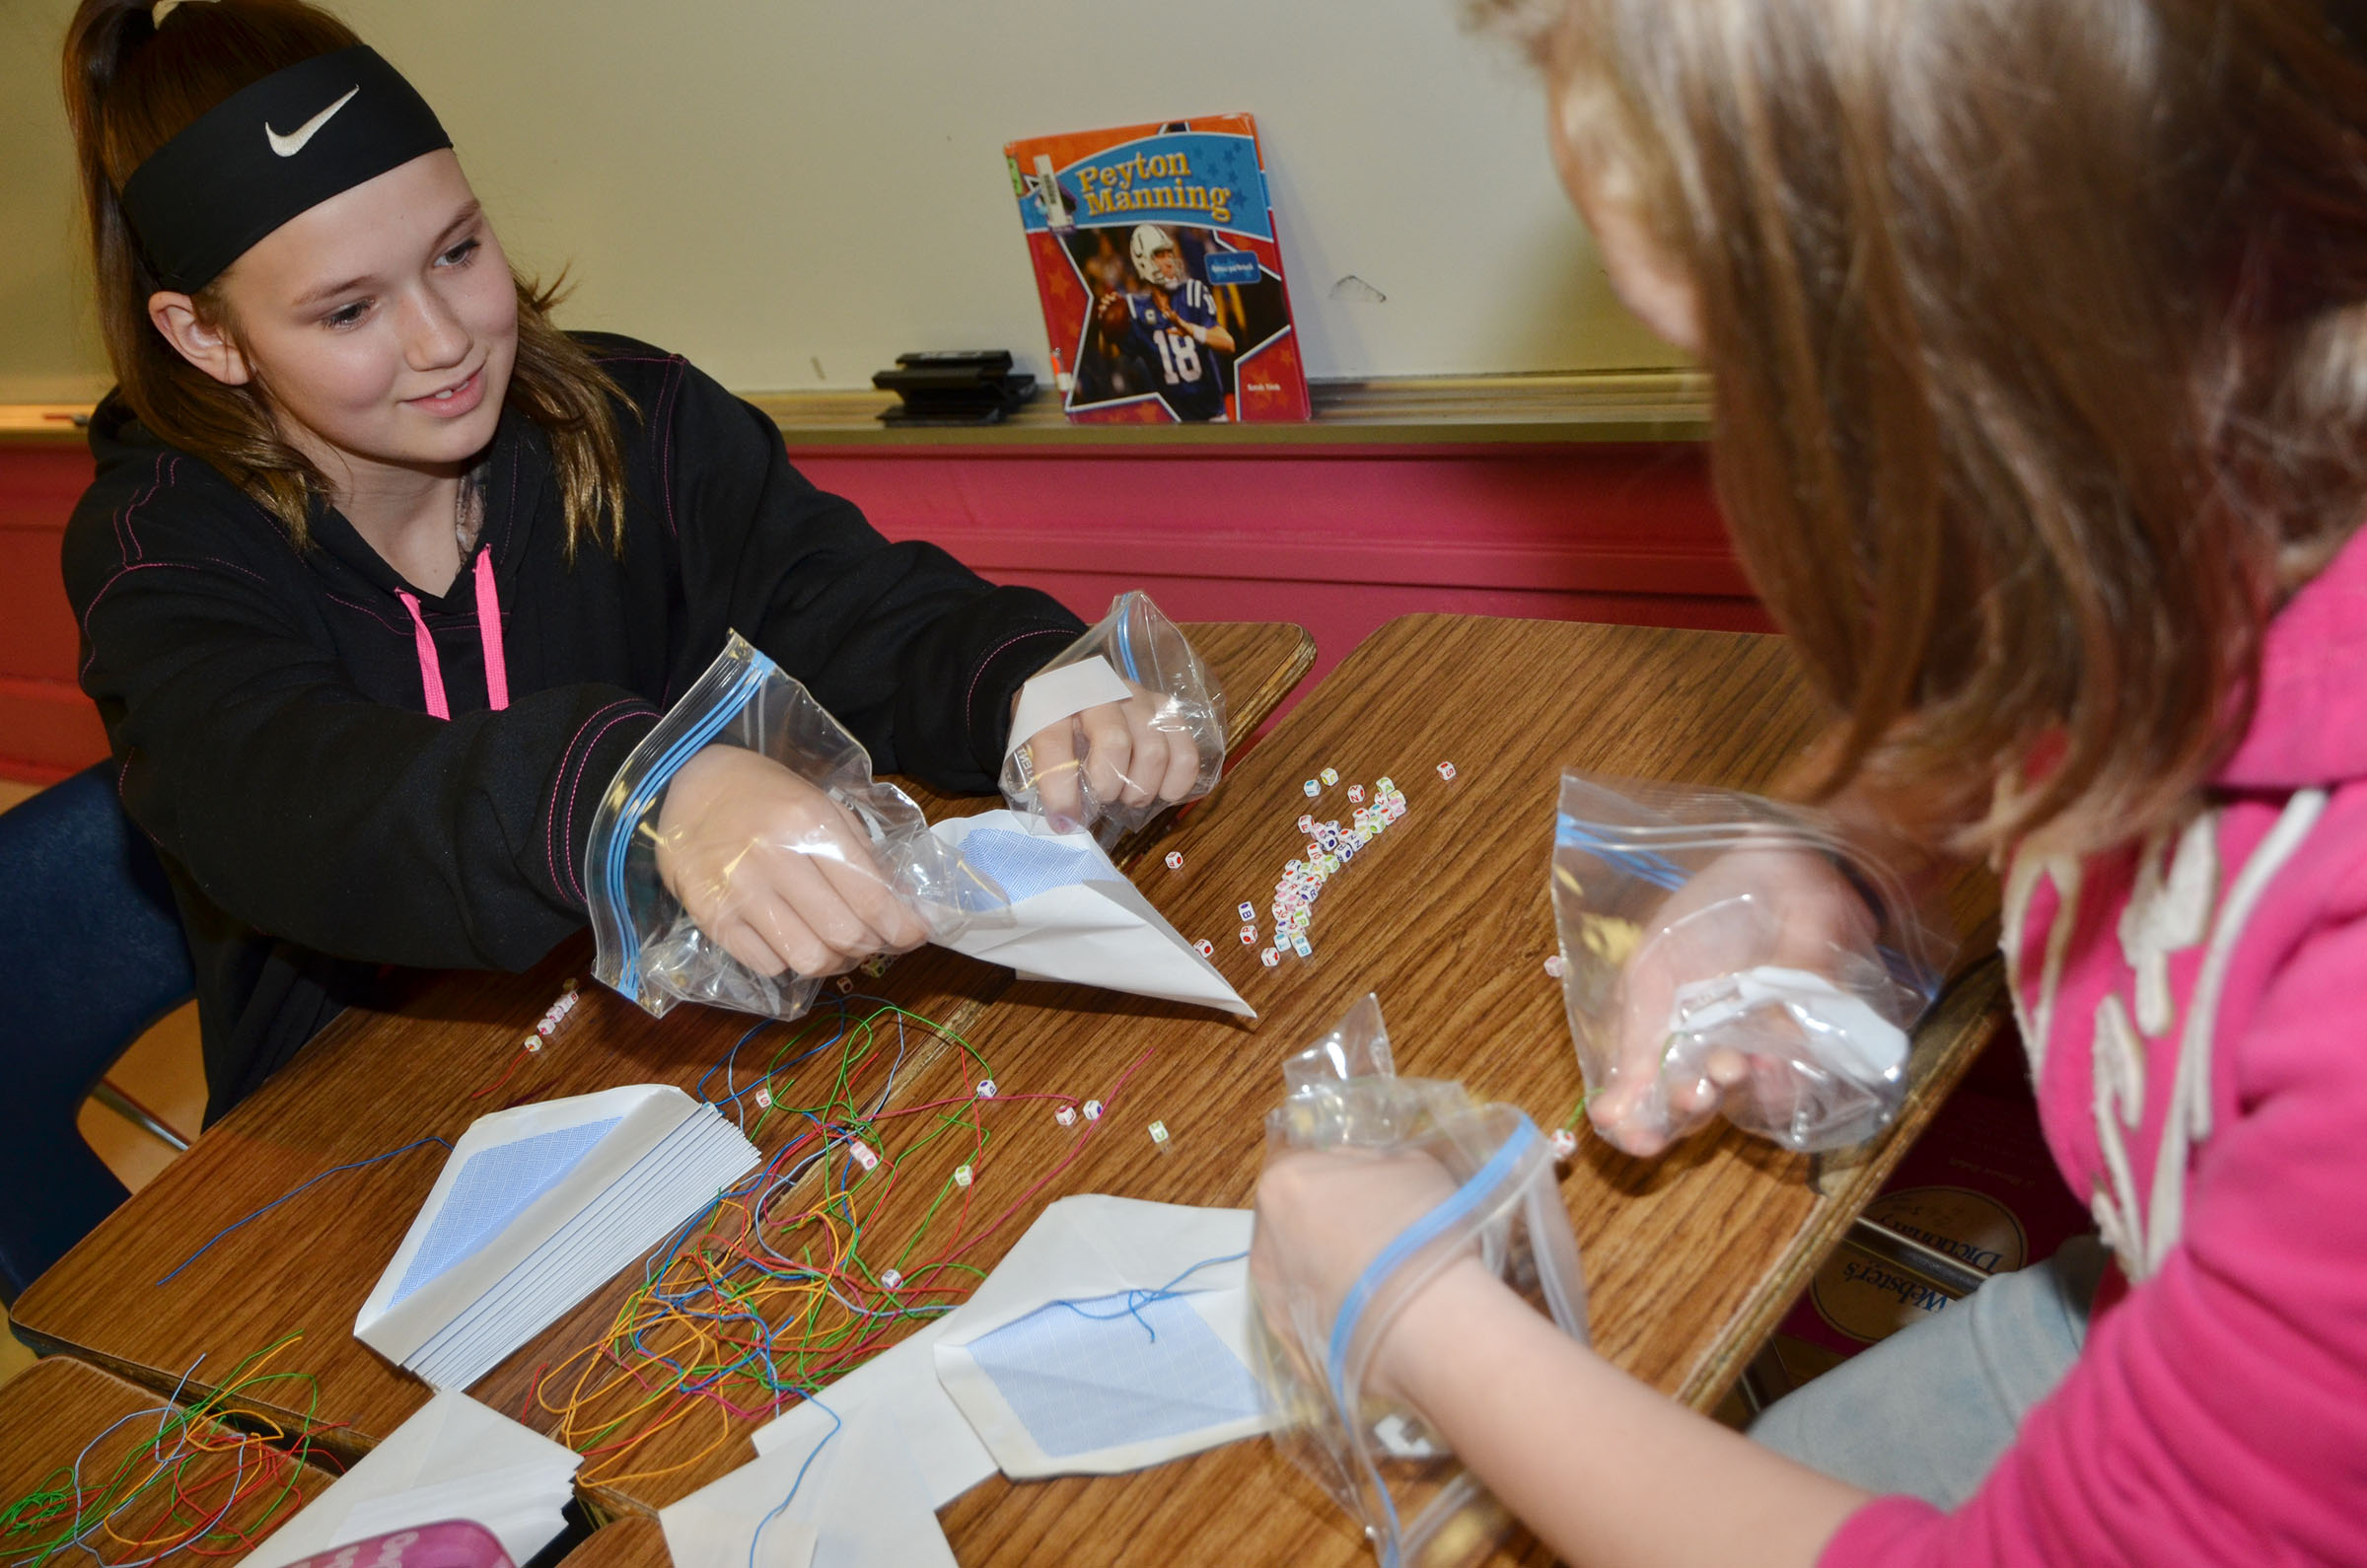 CMS sixth-grader BreAnna Humphress works with her groupmates to make bracelets while wearing zip lock bags for gloves.